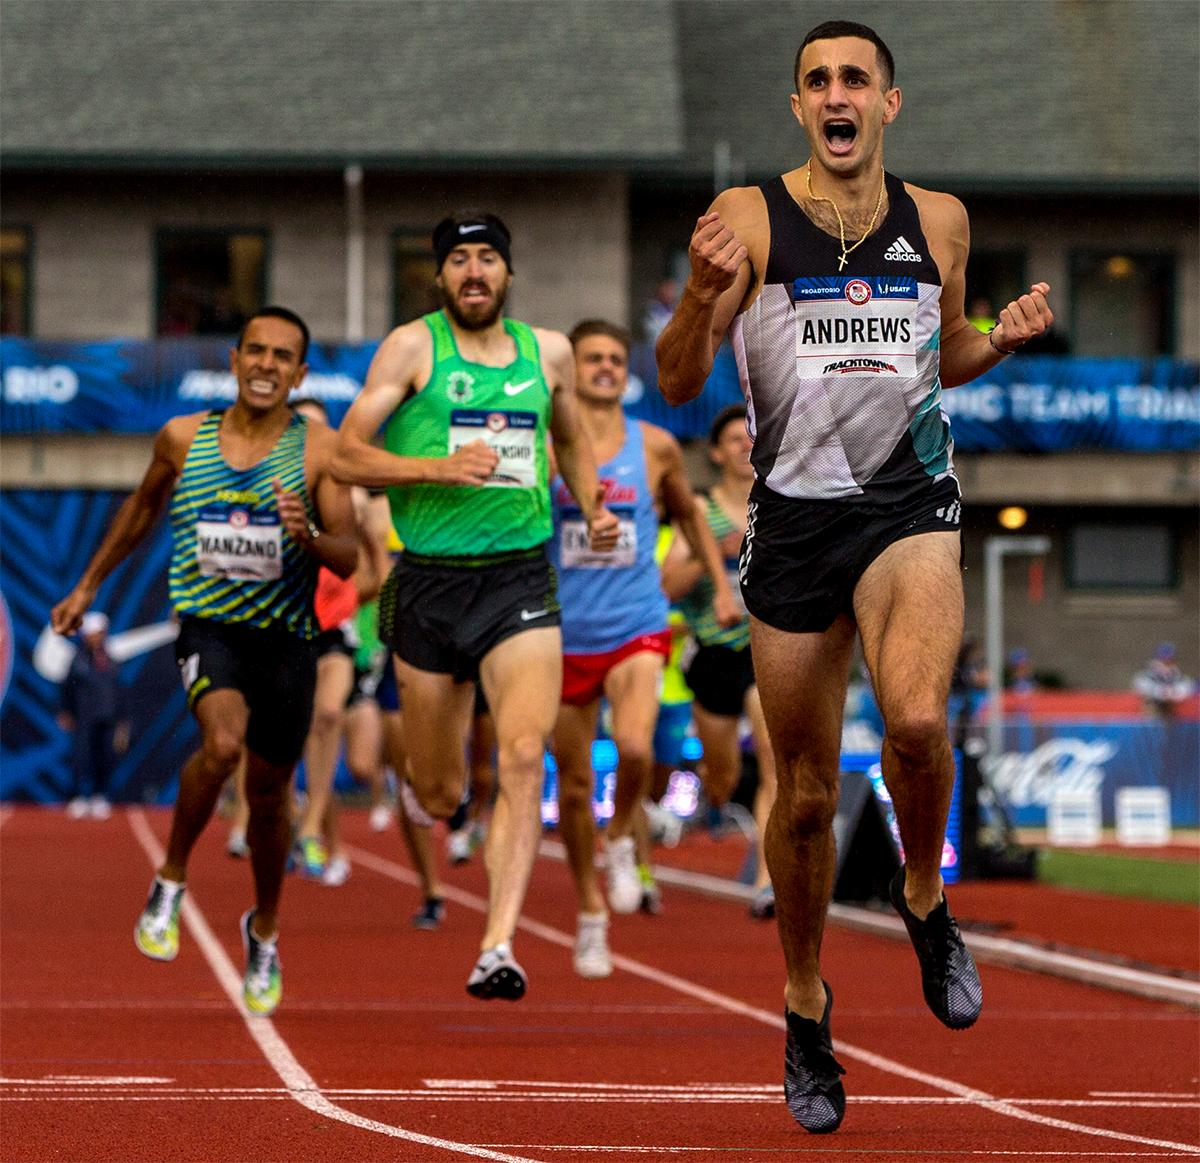 Adidas Robby Andrew hits the line in the 1,500 meters. Andrews finished second with a time of 3:34.88 and qualified for Rio. Photo by August Frank, Oregon News Lab